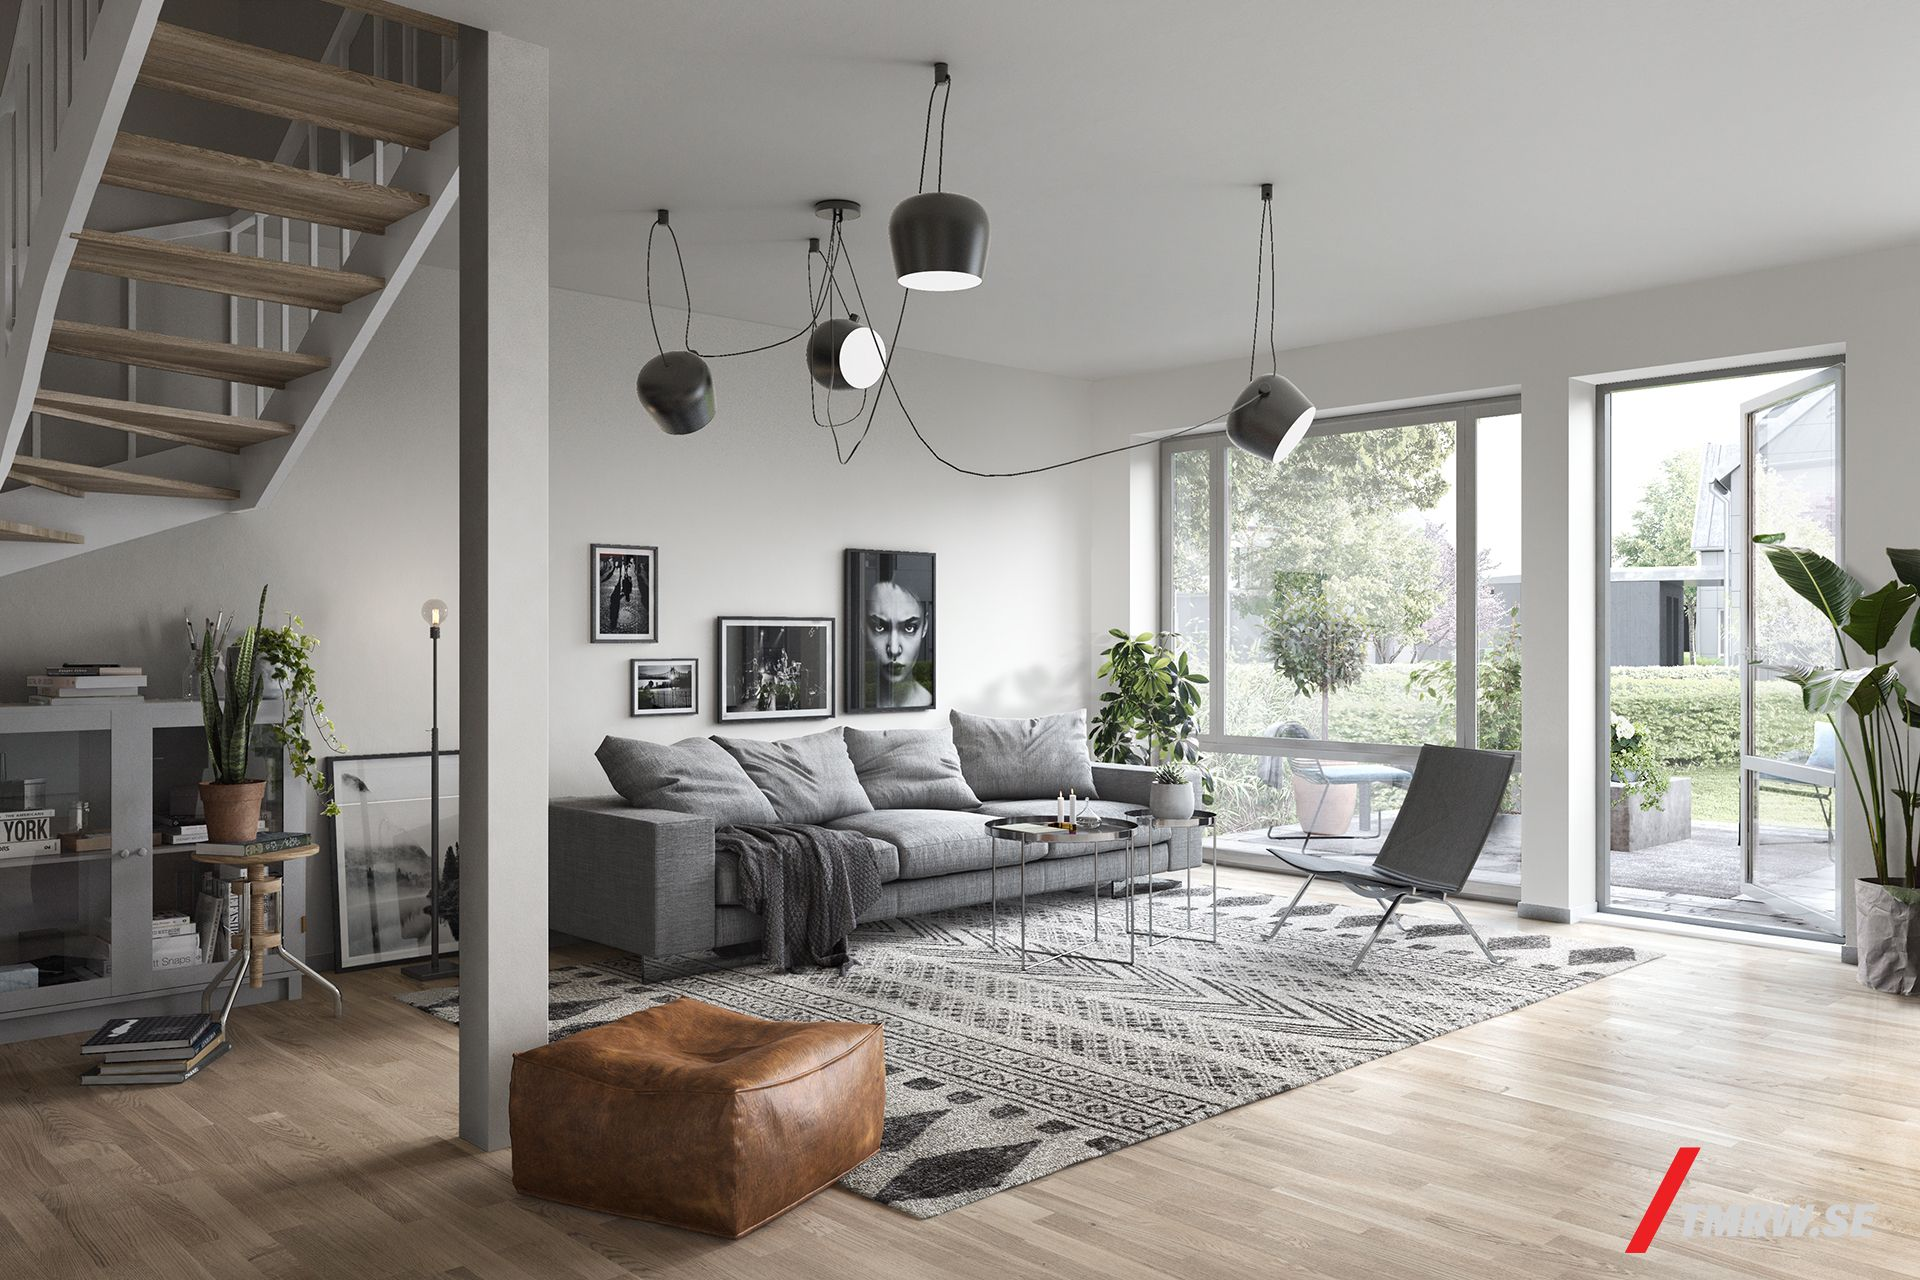 15 Zoom Meeting Backgrounds To Escape To Life In 3d Area By Autodesk In 2021 Living Room Interior Living Room Designs Interior